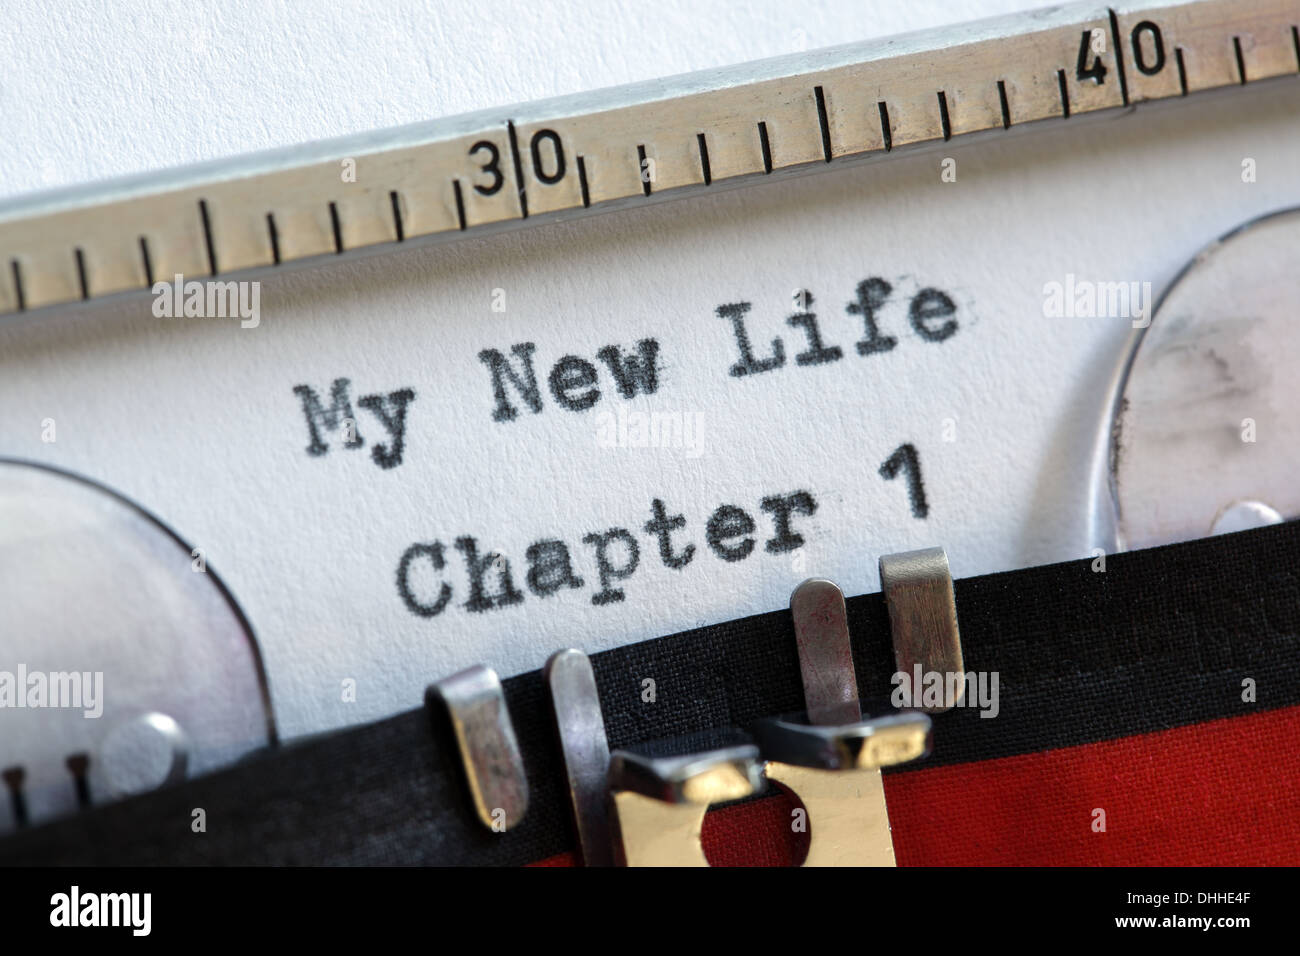 My new life - Stock Image